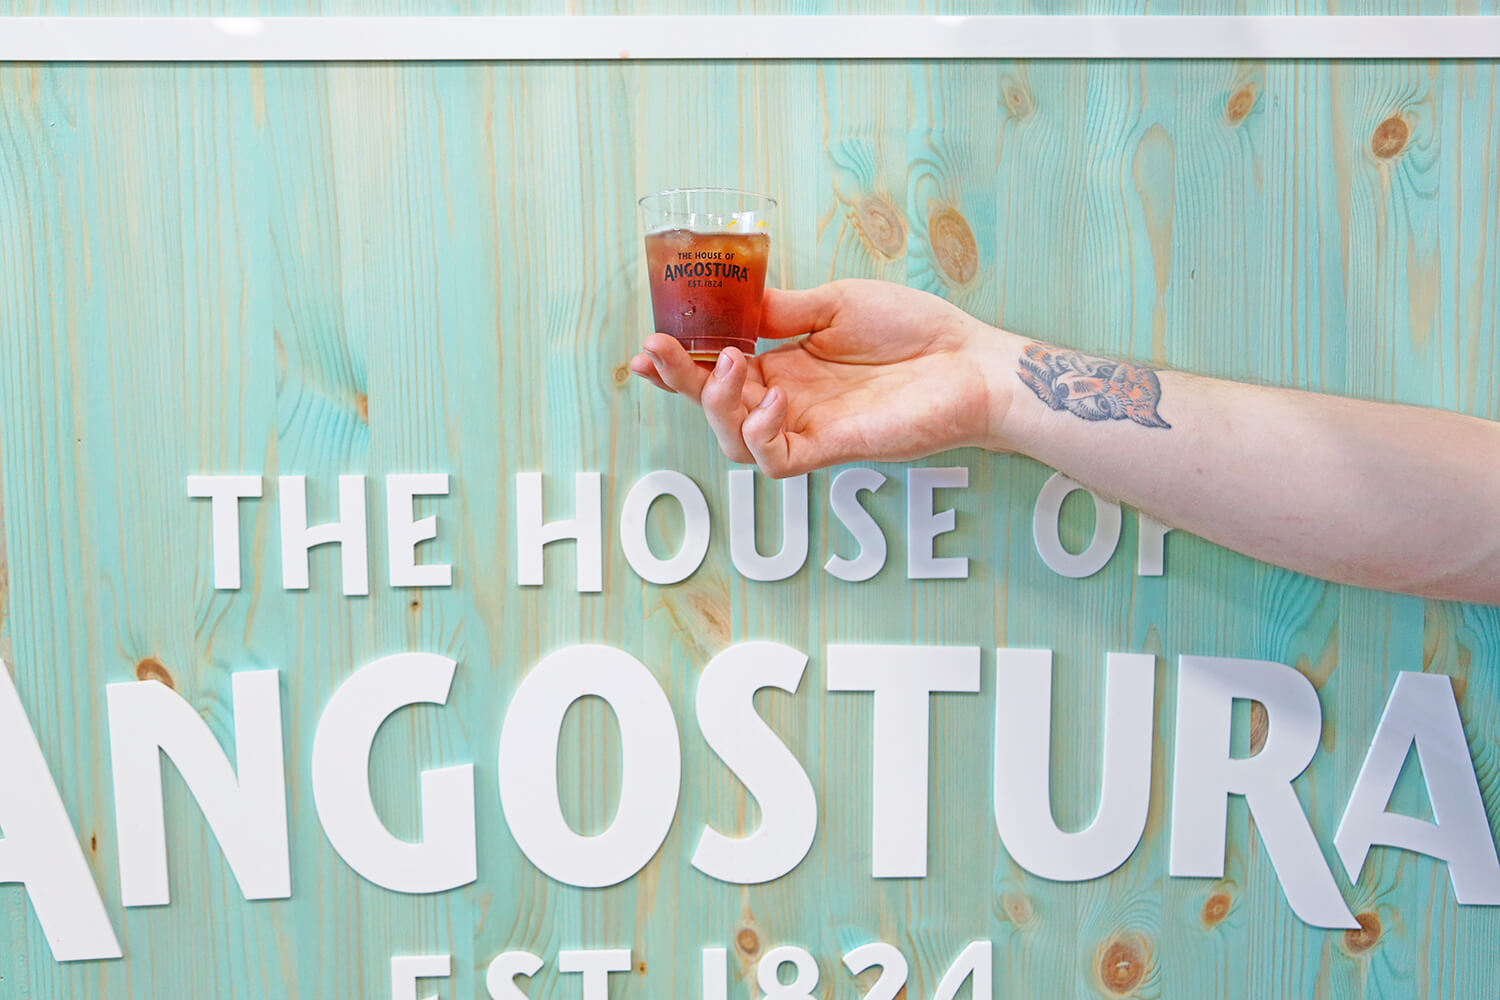 BCB Brooklyn with Angostura Bitters